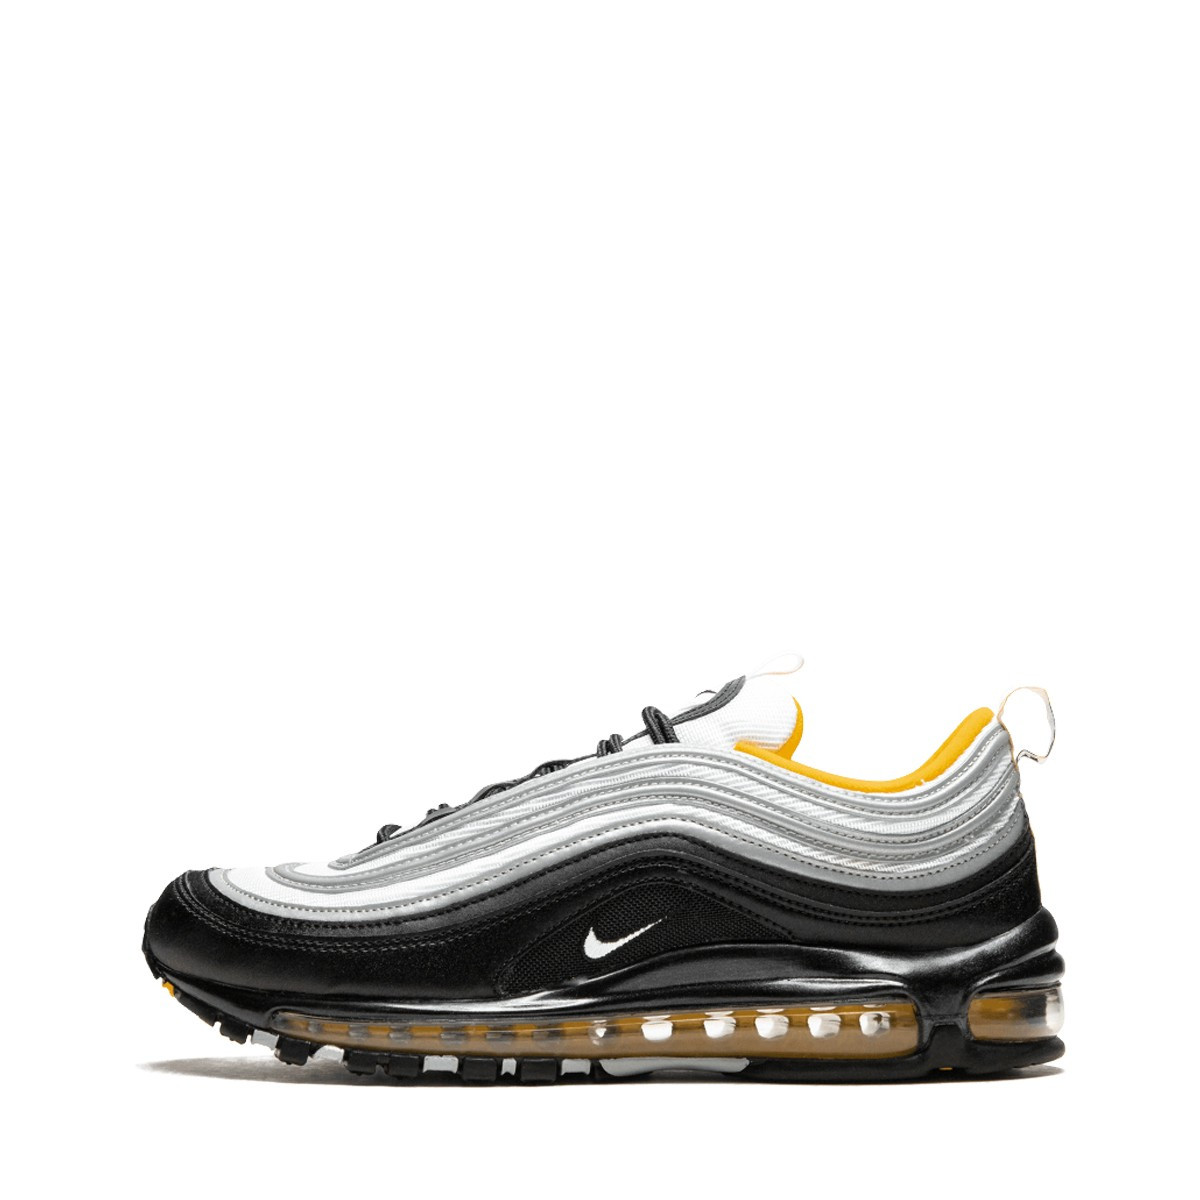 huge selection of f1ce4 258ad Nike Baskets Nike AIR MAX 97 - 921826-008. Loading zoom